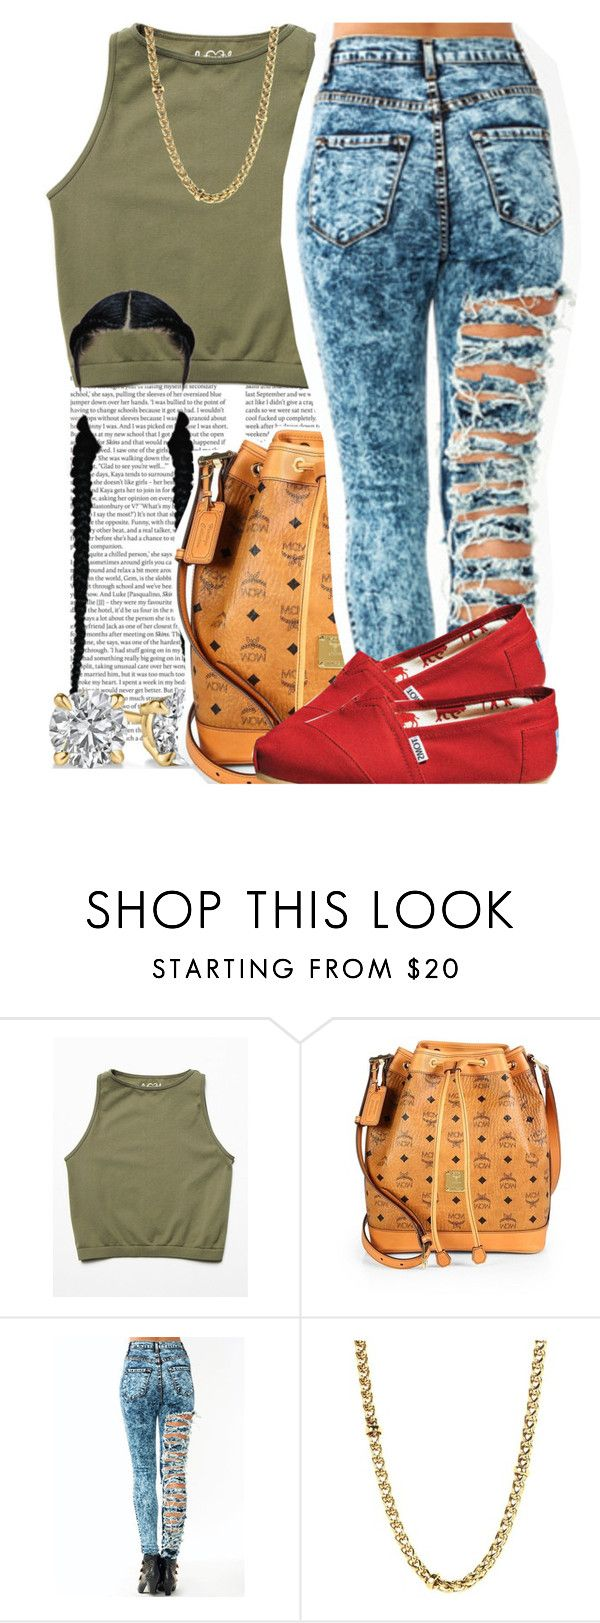 """""""August 16 , 2k15"""" by yungd ❤ liked on Polyvore featuring ASOS, Free People, MCM, Lauren Ralph Lauren, TOMS, women's clothing, women's fashion, women, female and woman"""